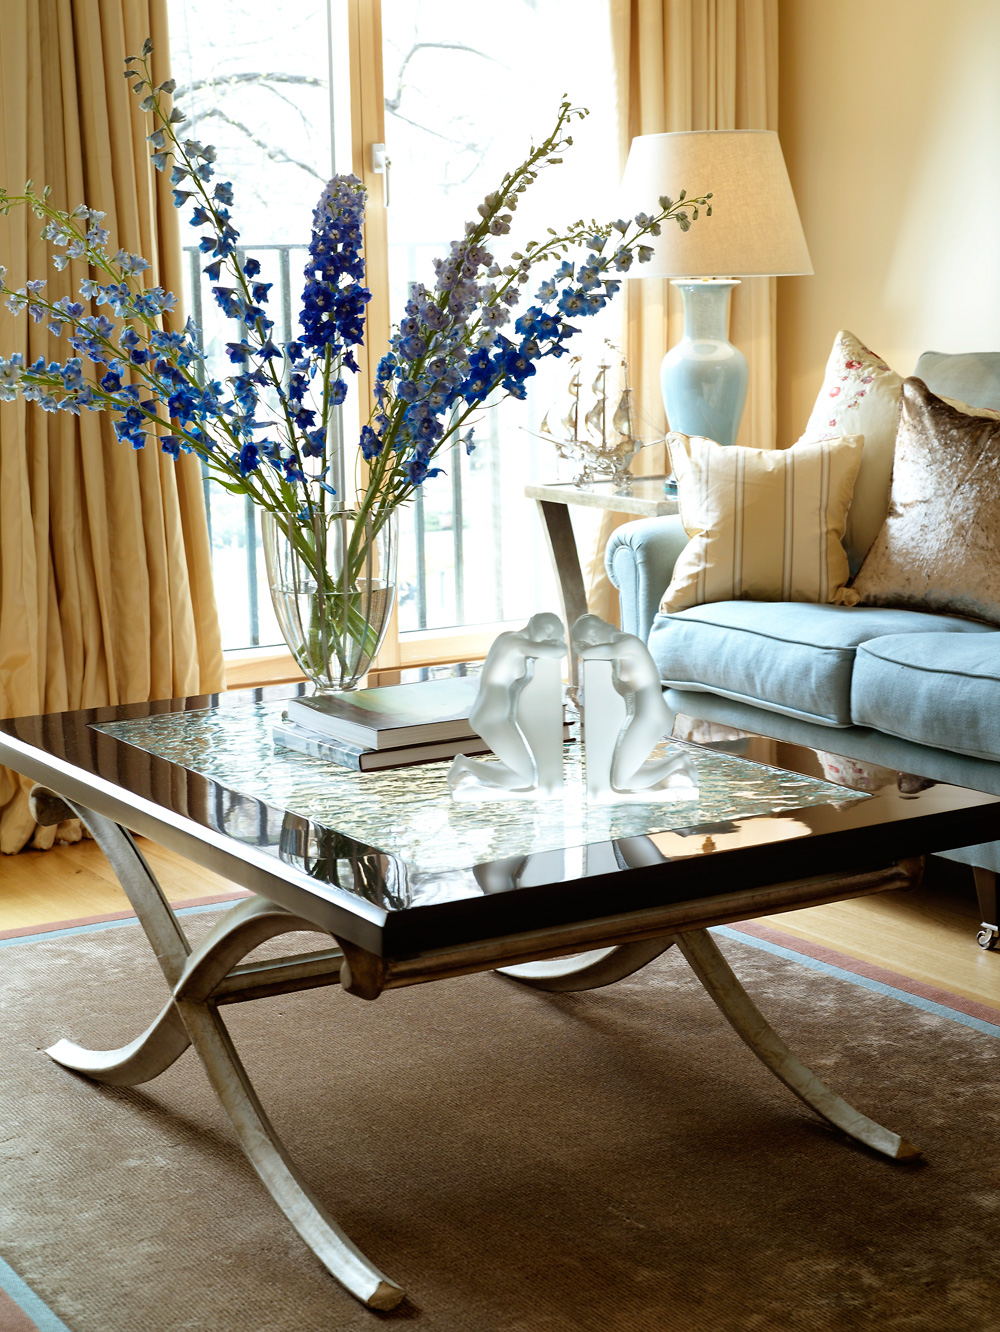 Westminster apartment sitting room table with delphiniums